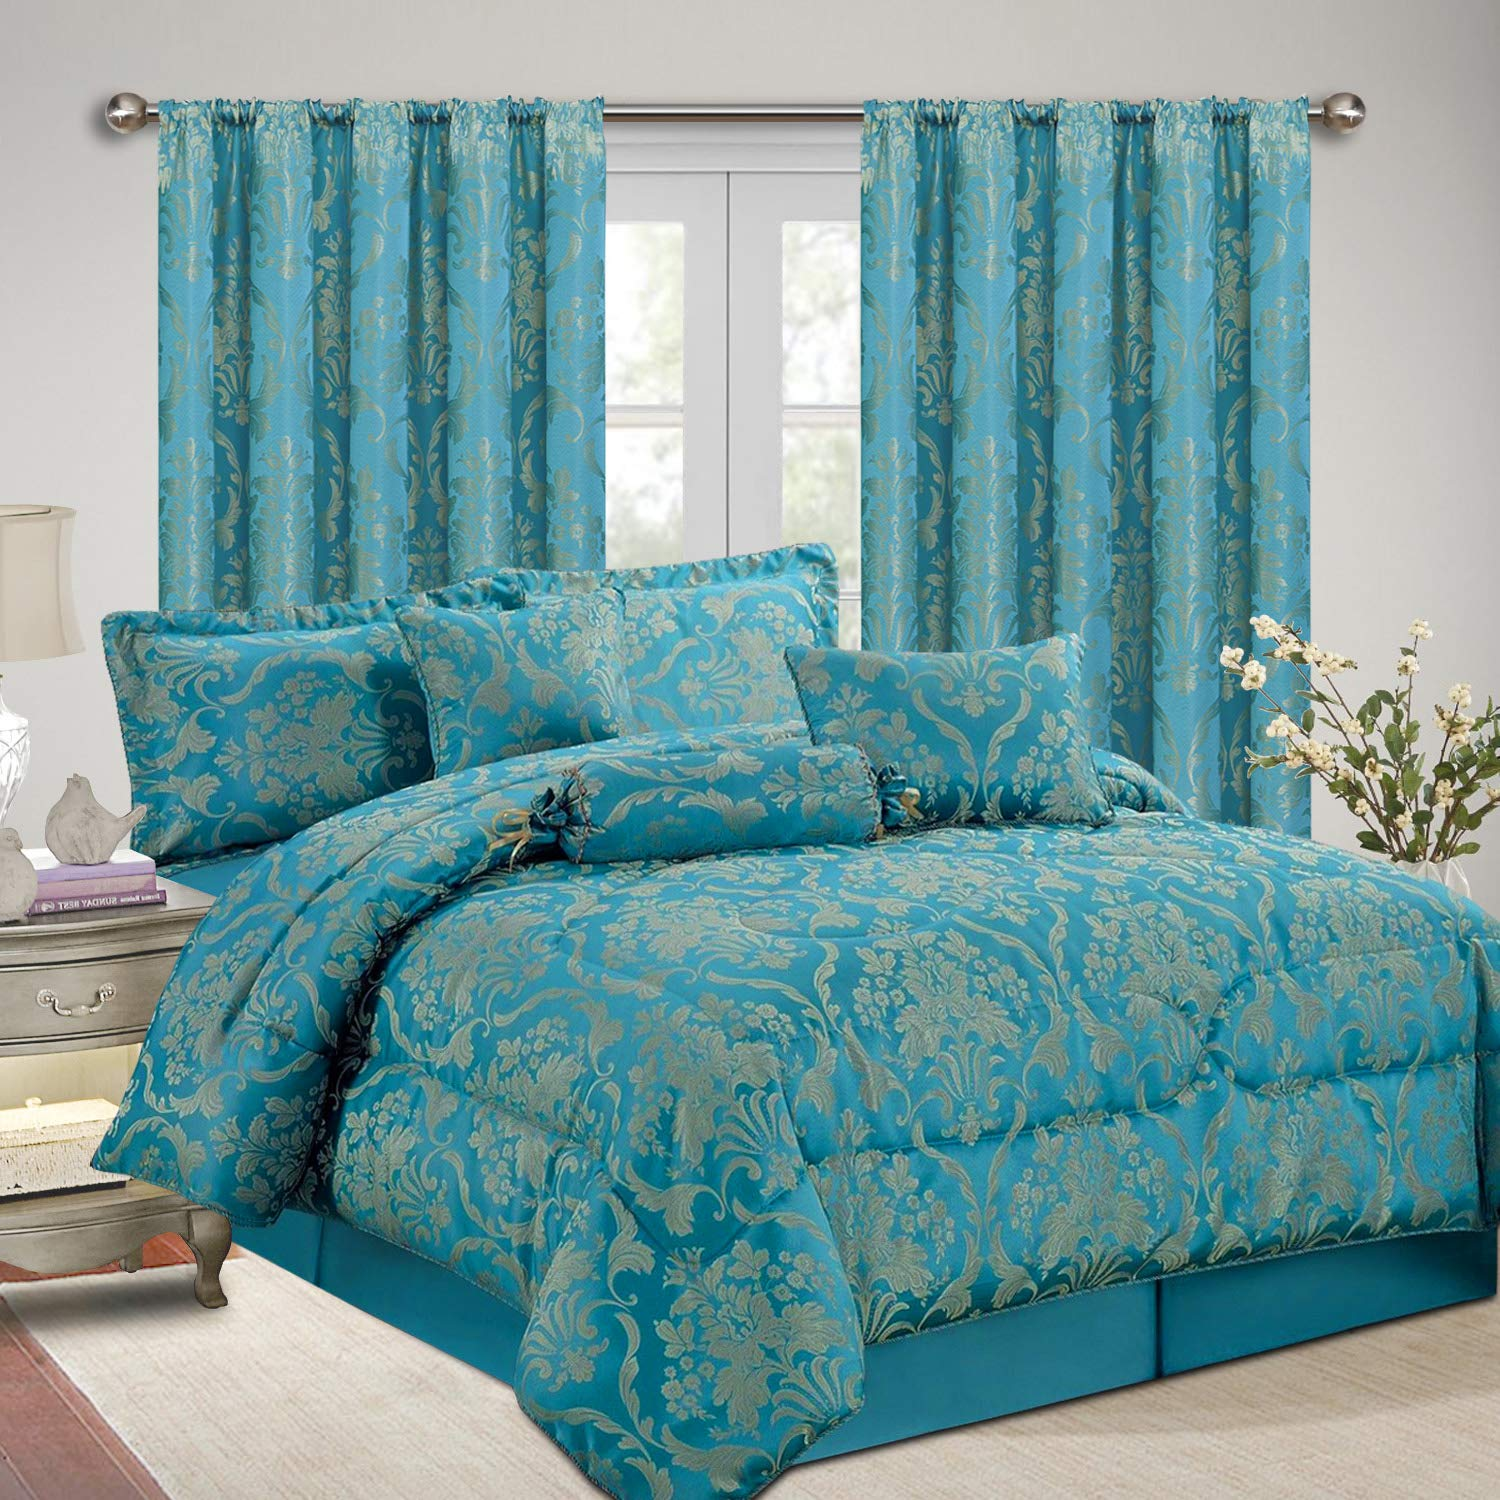 AS Imperial Rooms Jacquard 14 Piece Bedding with matching Curtains